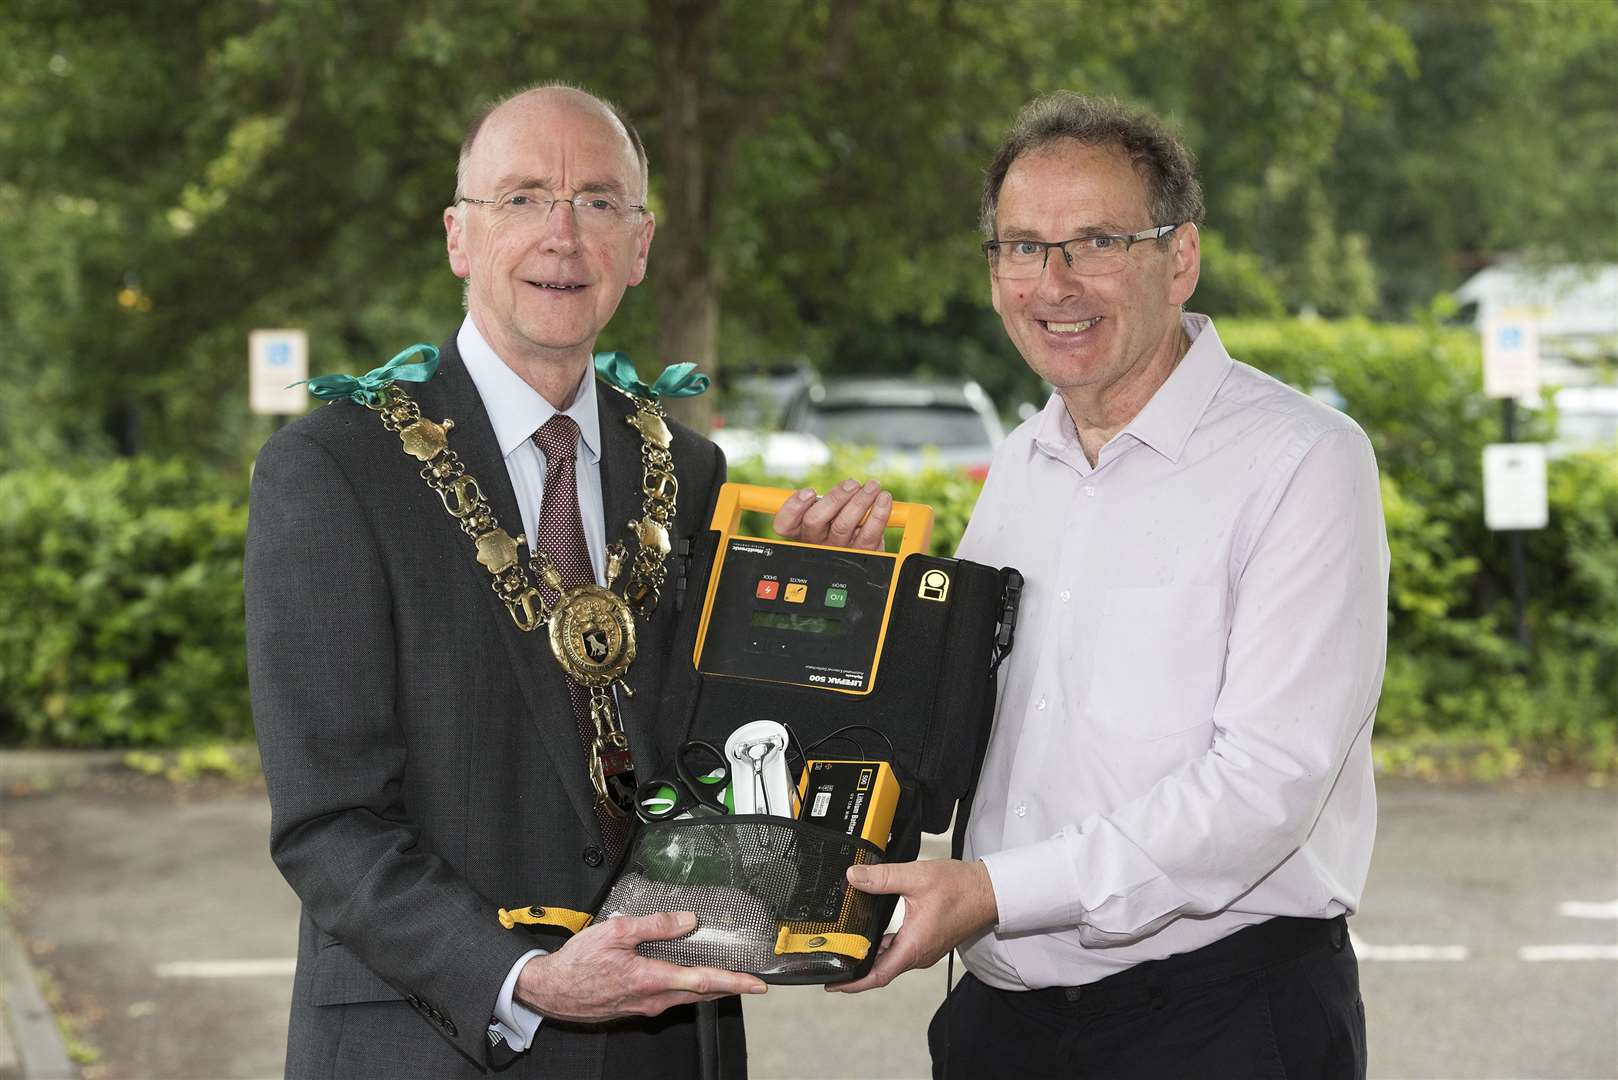 SUDBURY.Kingfisher Leisure Centre, Station Road, Sudbury.Sudbury mayor Robert Spivey has backed a campaign by local resident Andy Read, who survived a cardiac arrest in 2018, to increase the number of 24/7 community defibrillators around the town. Picture Mark Westley. (12600334)